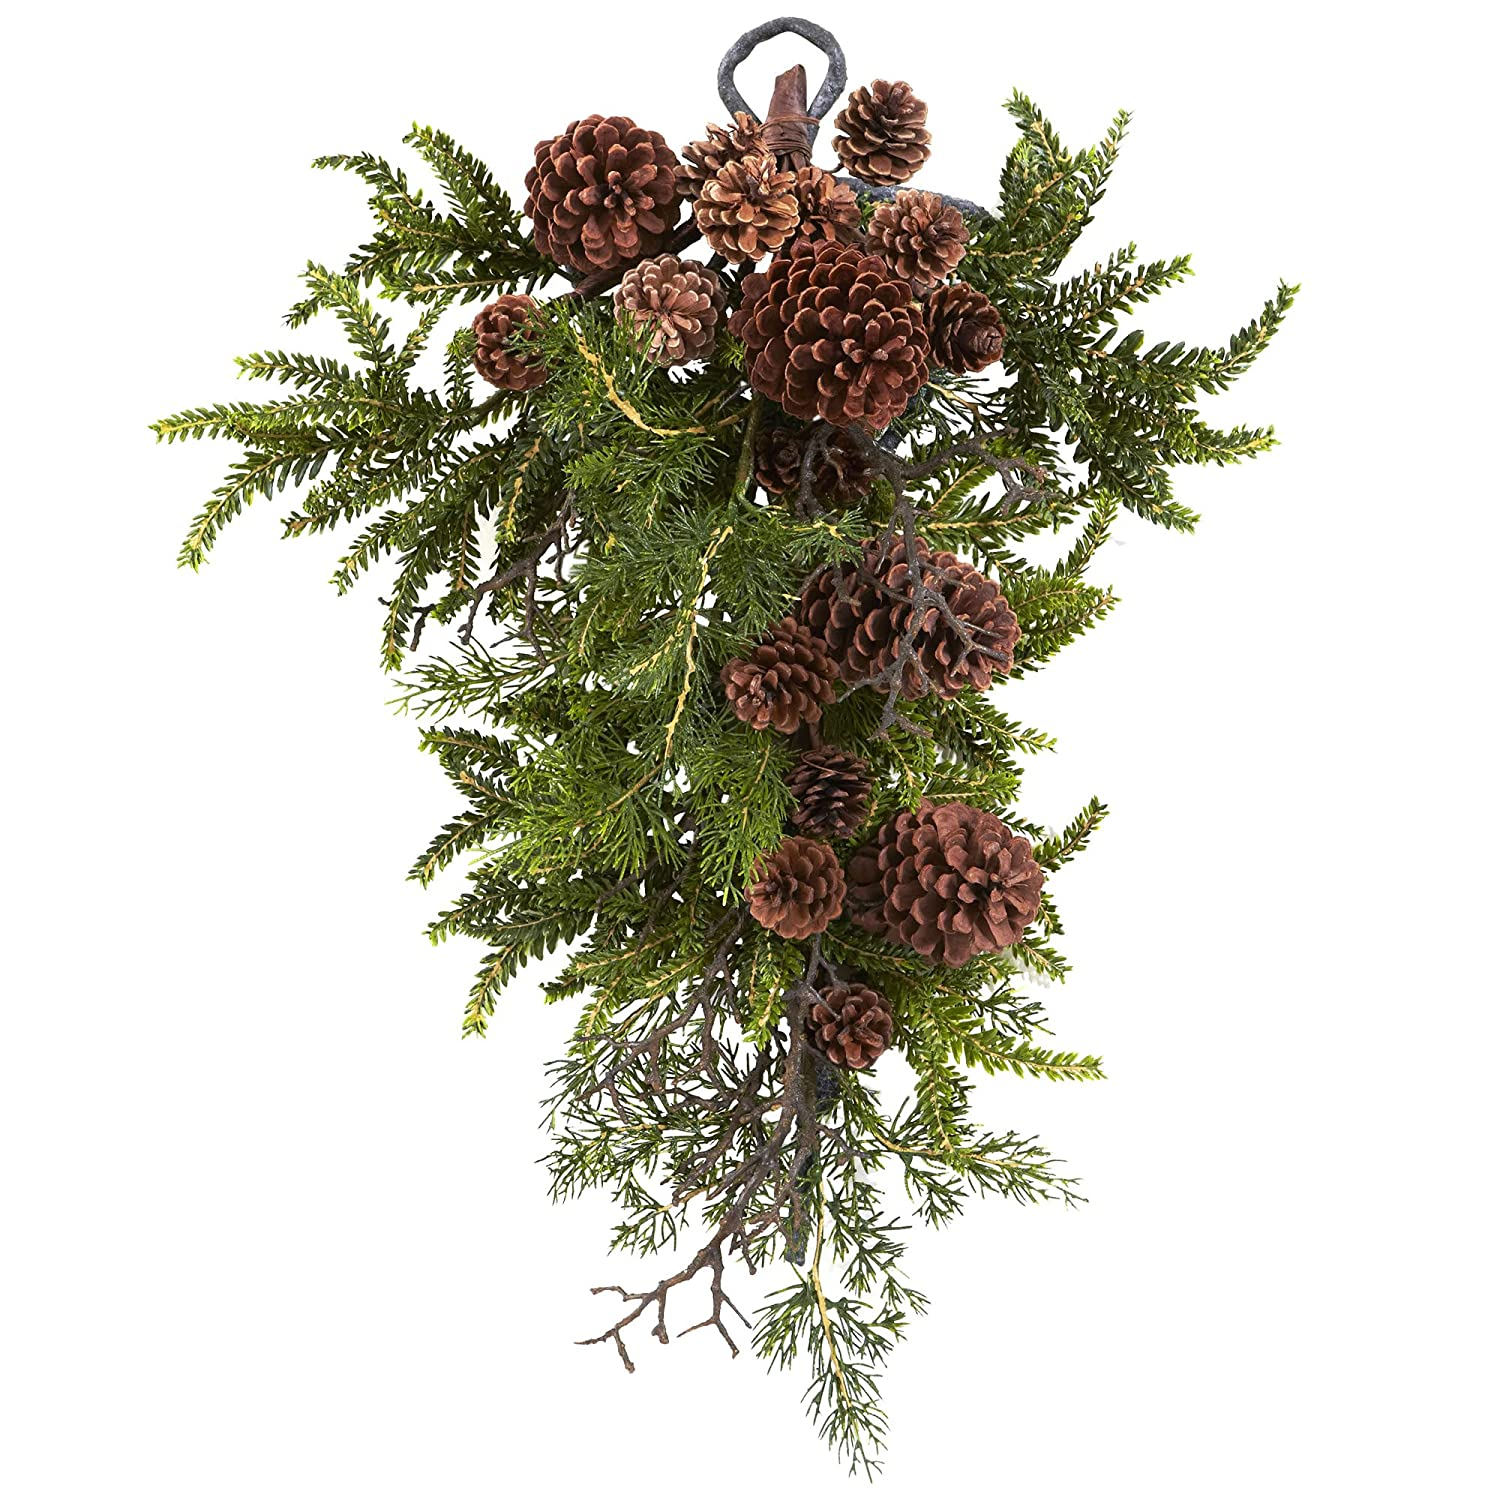 Nearly Natural 4944 Pine and Pine Cone Teardrop, 26-Inch, Green/Brown